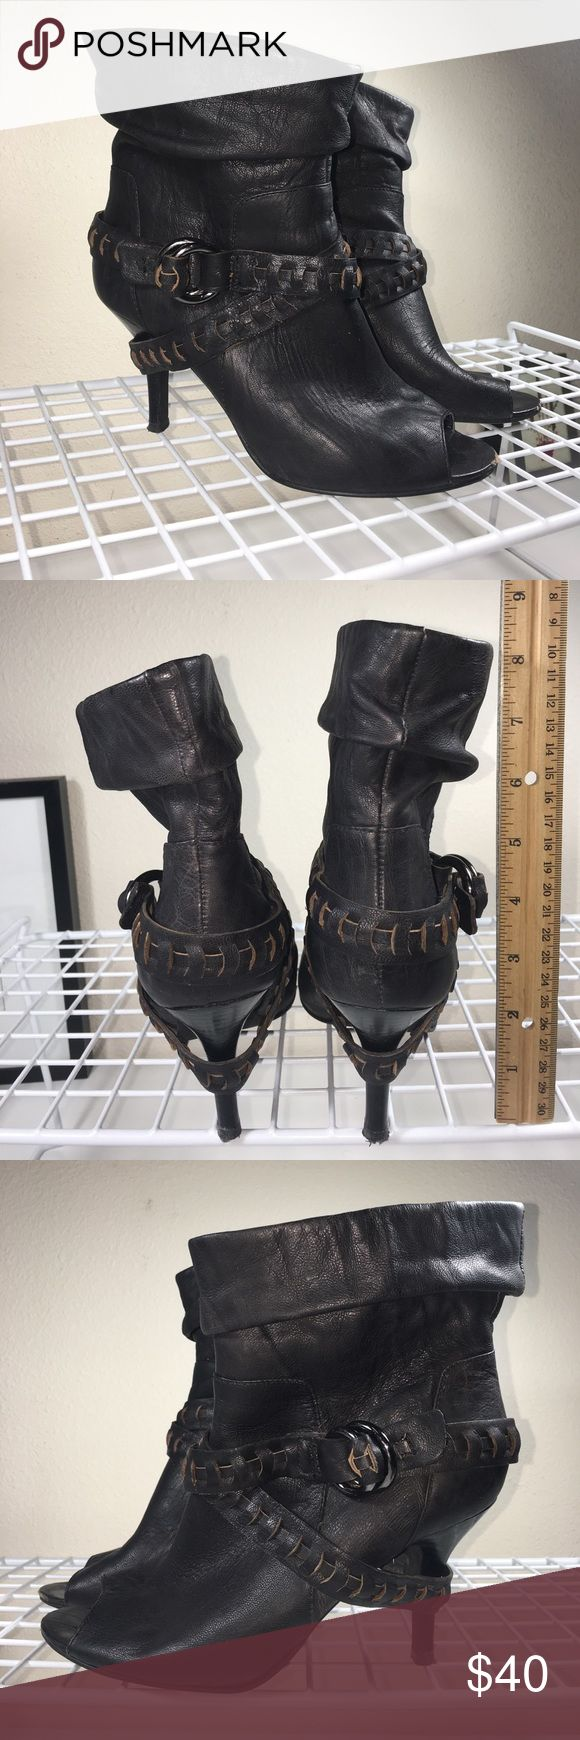 Guess Leather Booties With Braid Detail Sz. 6.5 Great condition leather heeled booties by Guess.  Footbed shows some discoloration due to wear but nothing major.  Heel caps show usual wear when walking on gravel or pavement.  No major scuffs, other than on the tips of the footbed (pictures), great condition and ready to ship!  Bundle to save.  Sorry, no trades.  Ask questions if any since all Poshmark sales are final.  I am not responsible for fit. Guess Shoes Ankle Boots & Booties